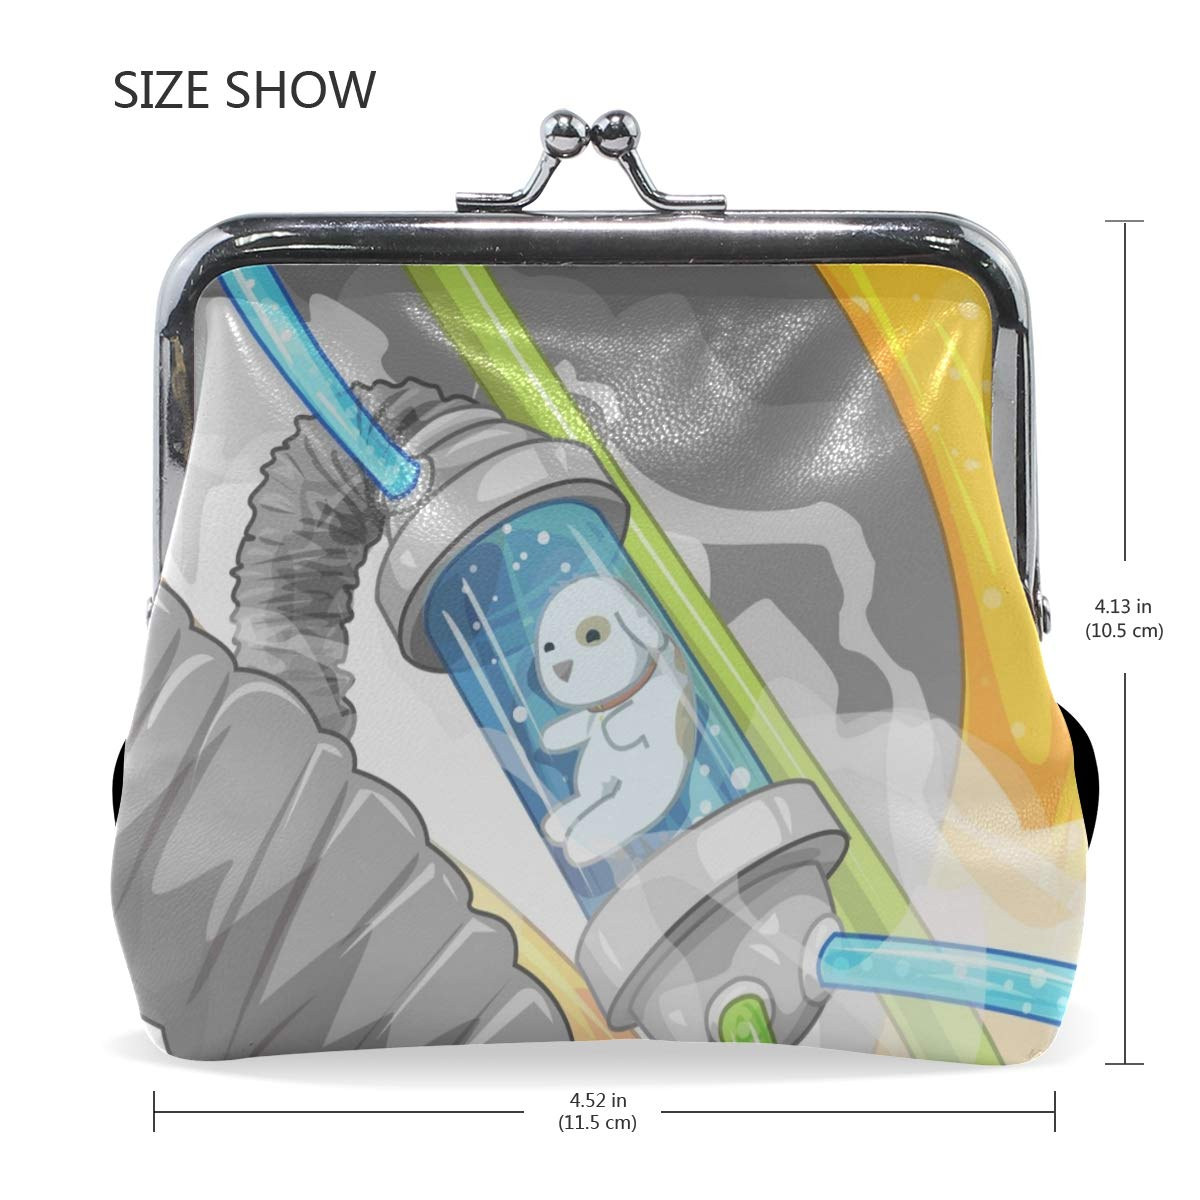 Rh Studio Coin Purse Clasp Closure Dogs Flying Flasks Tubes Print Wallet Exquisite Coin Pouch Girls Women Clutch Handbag Exquisite Gift